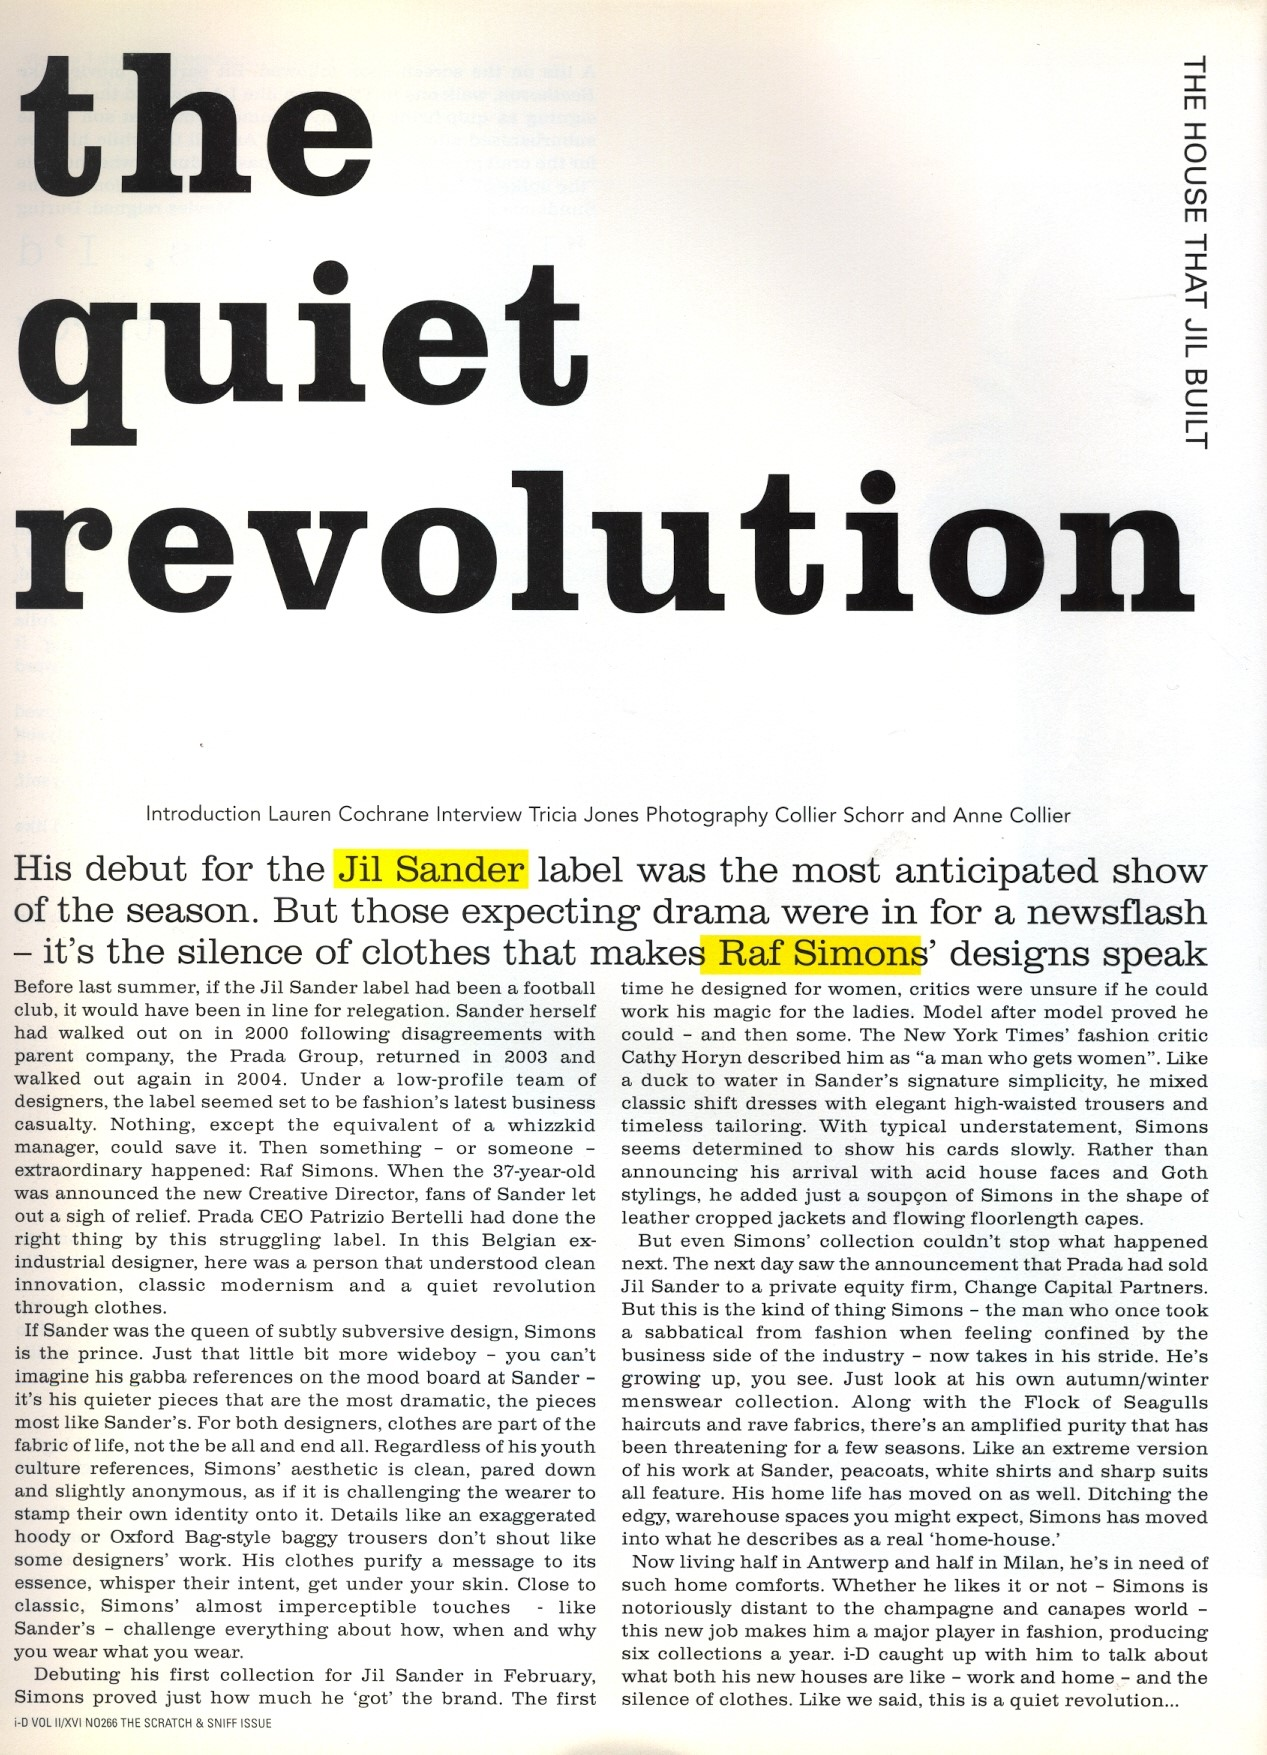 the quiet revolution photography collier schorr and anne collier id magazine N266 may 2006 1